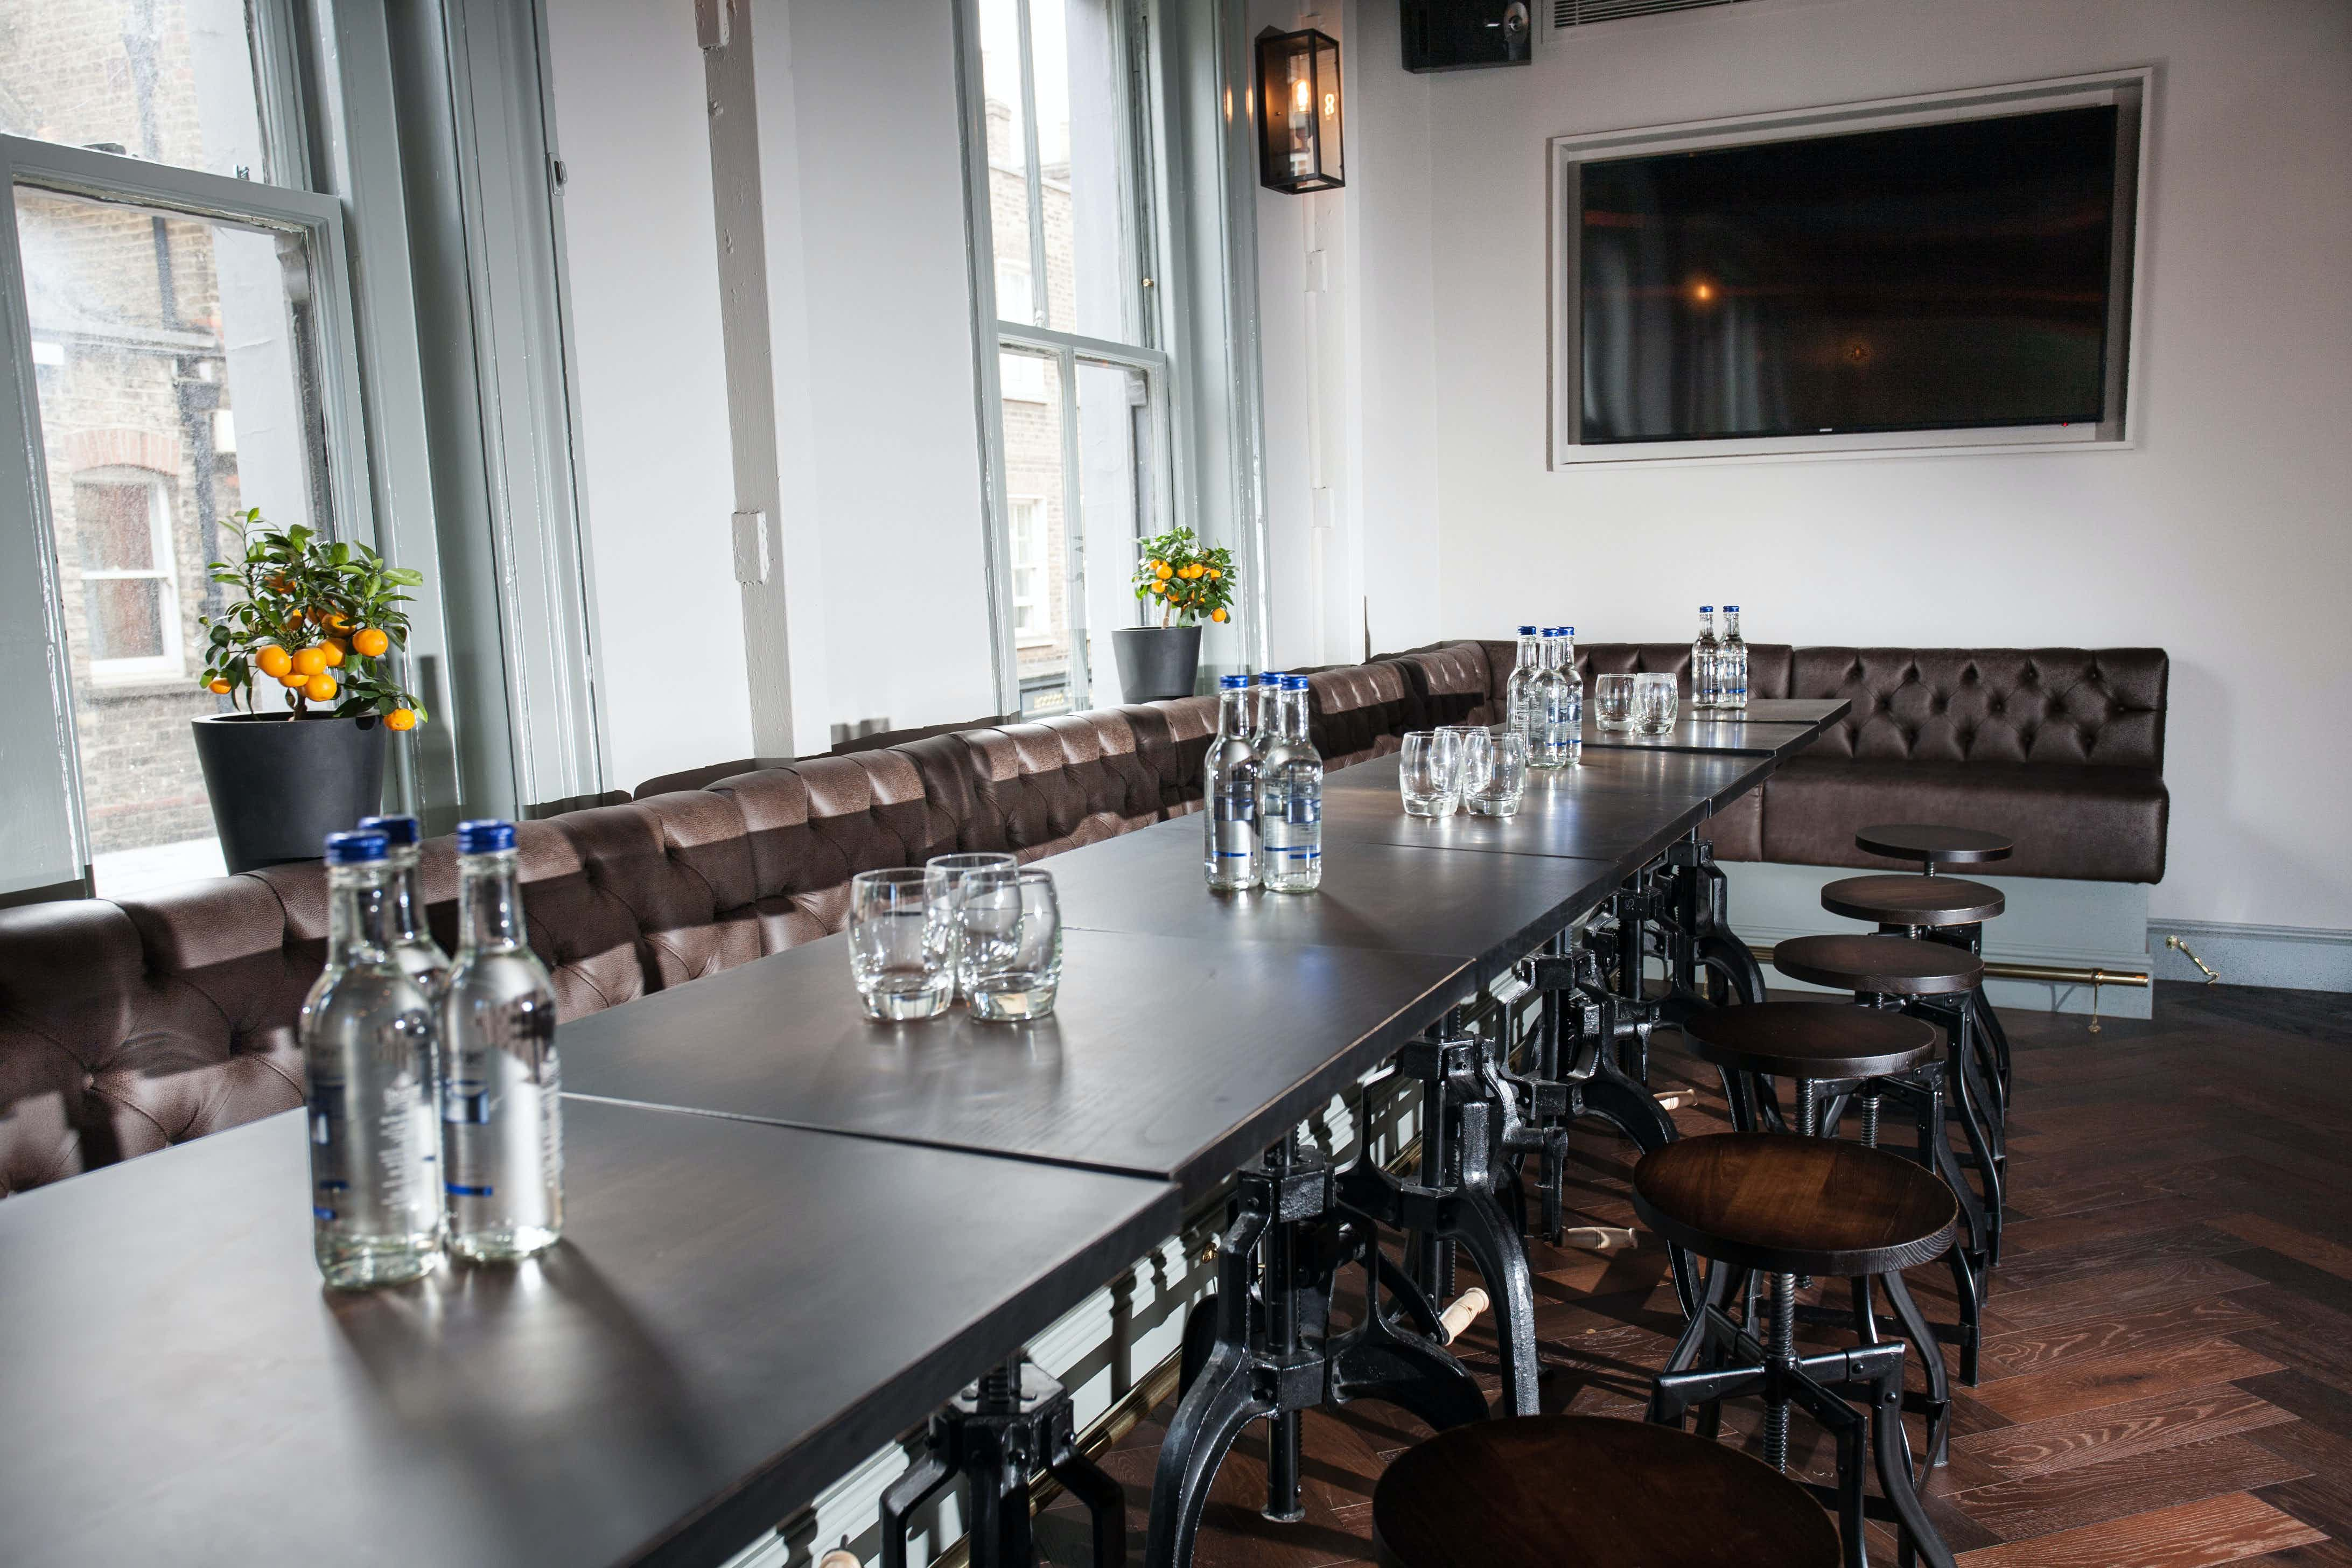 Saloon Bar, The Marylebone